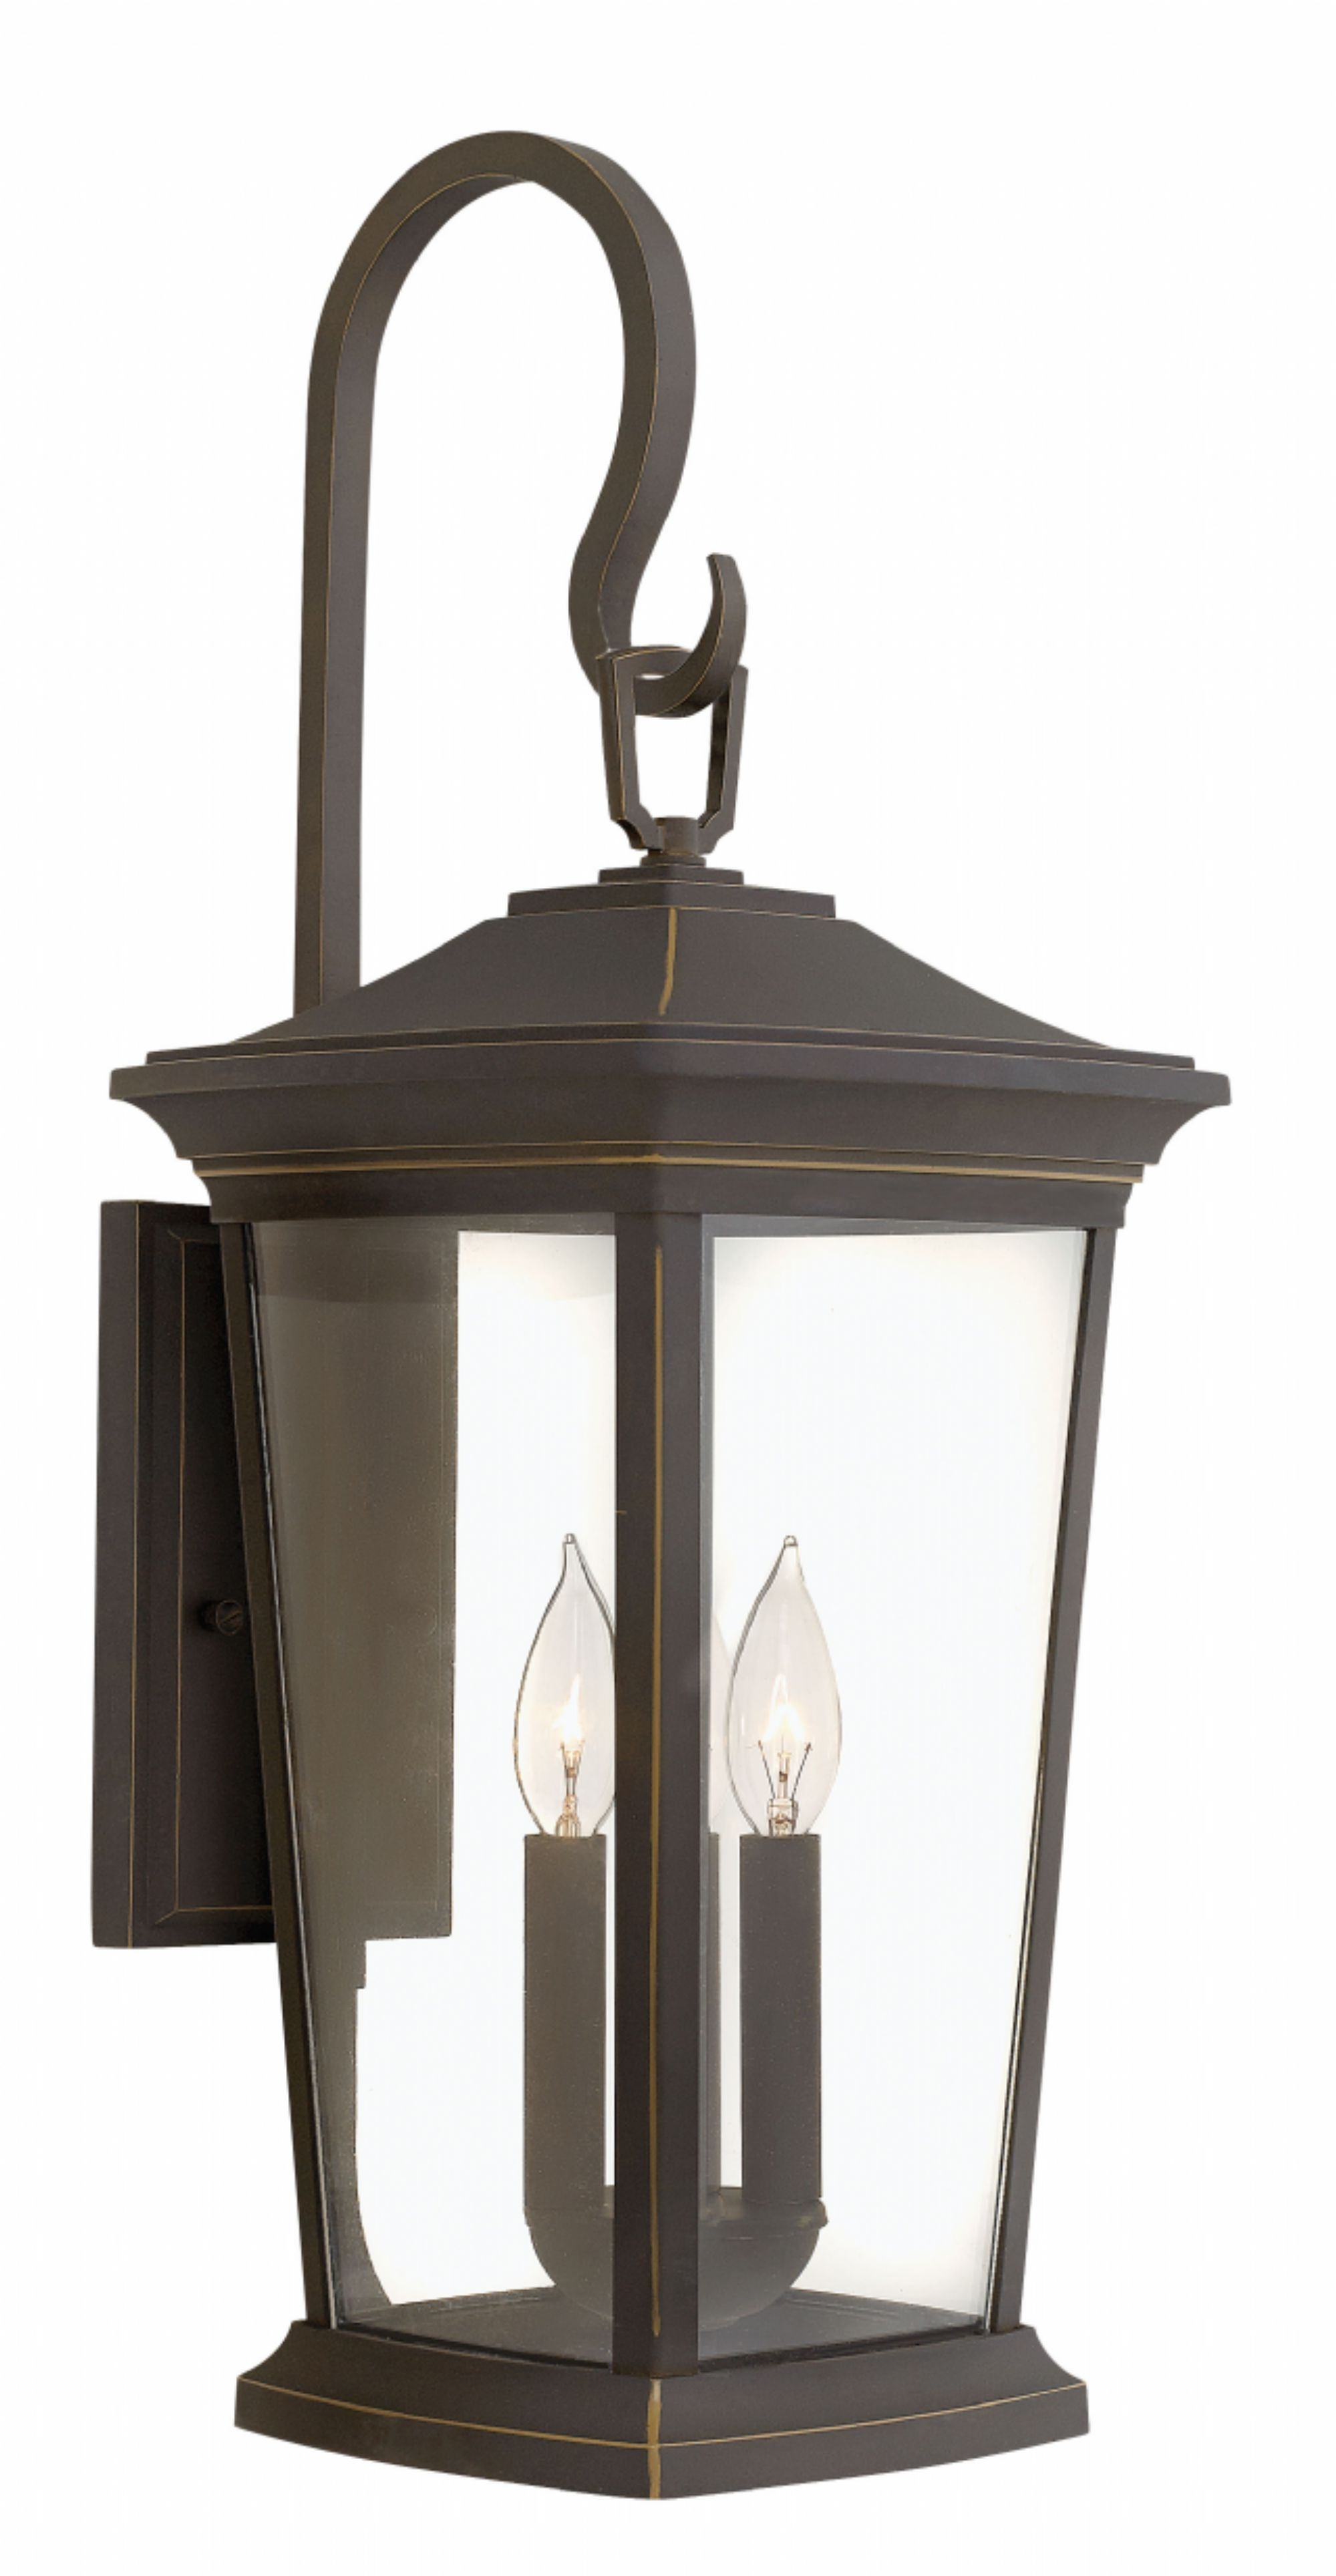 Oil Rubbed Bronze Bromley > Exterior Wall Mount Intended For Trendy Hinkley Outdoor Wall Lighting (View 10 of 20)